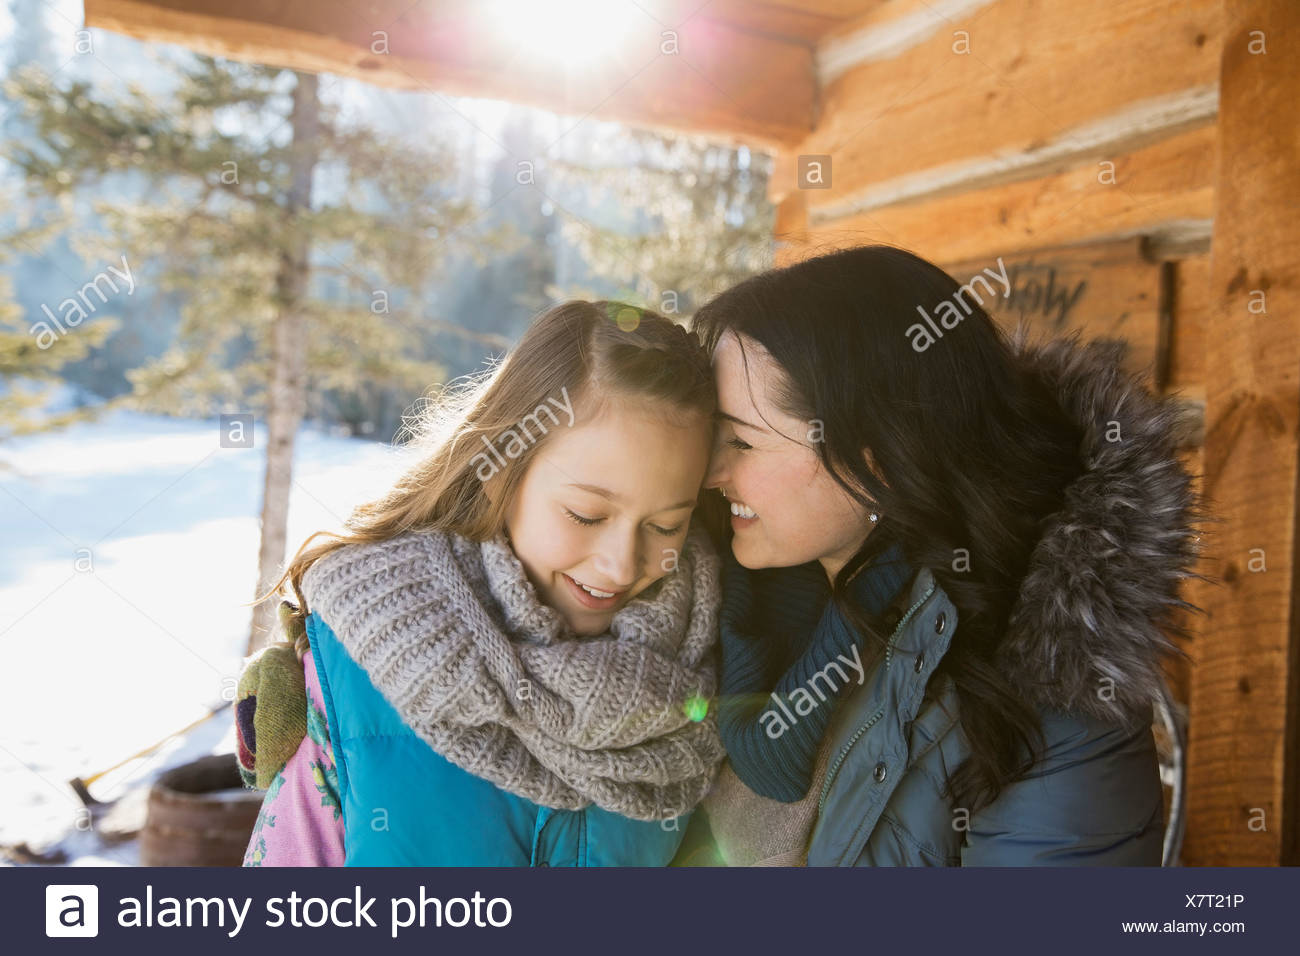 Affectionate mother and daughter outside log cabin - Stock Image